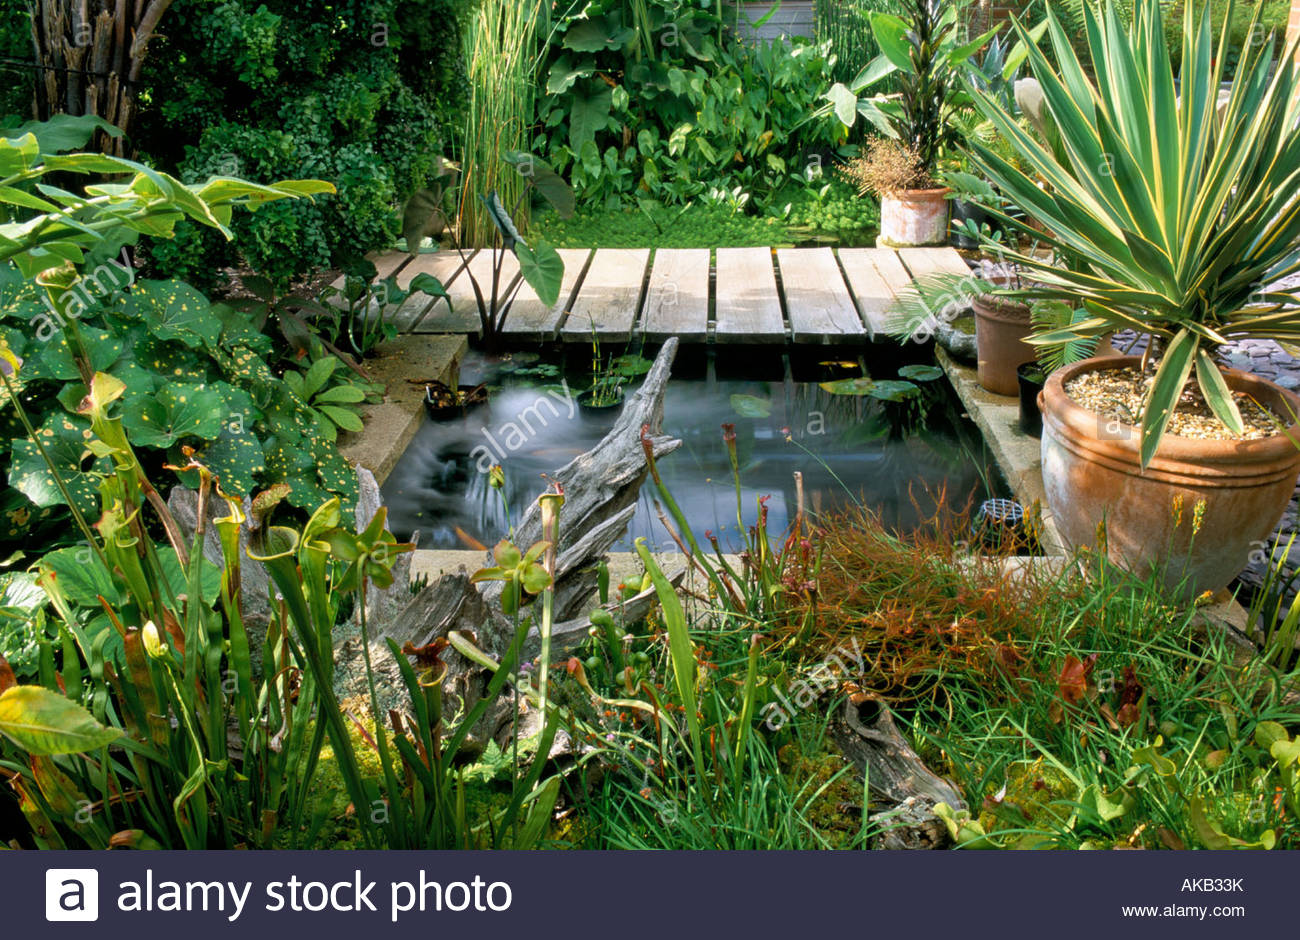 Waterford lane hampshire design peter read small pond with for Decorative fish pond bridge